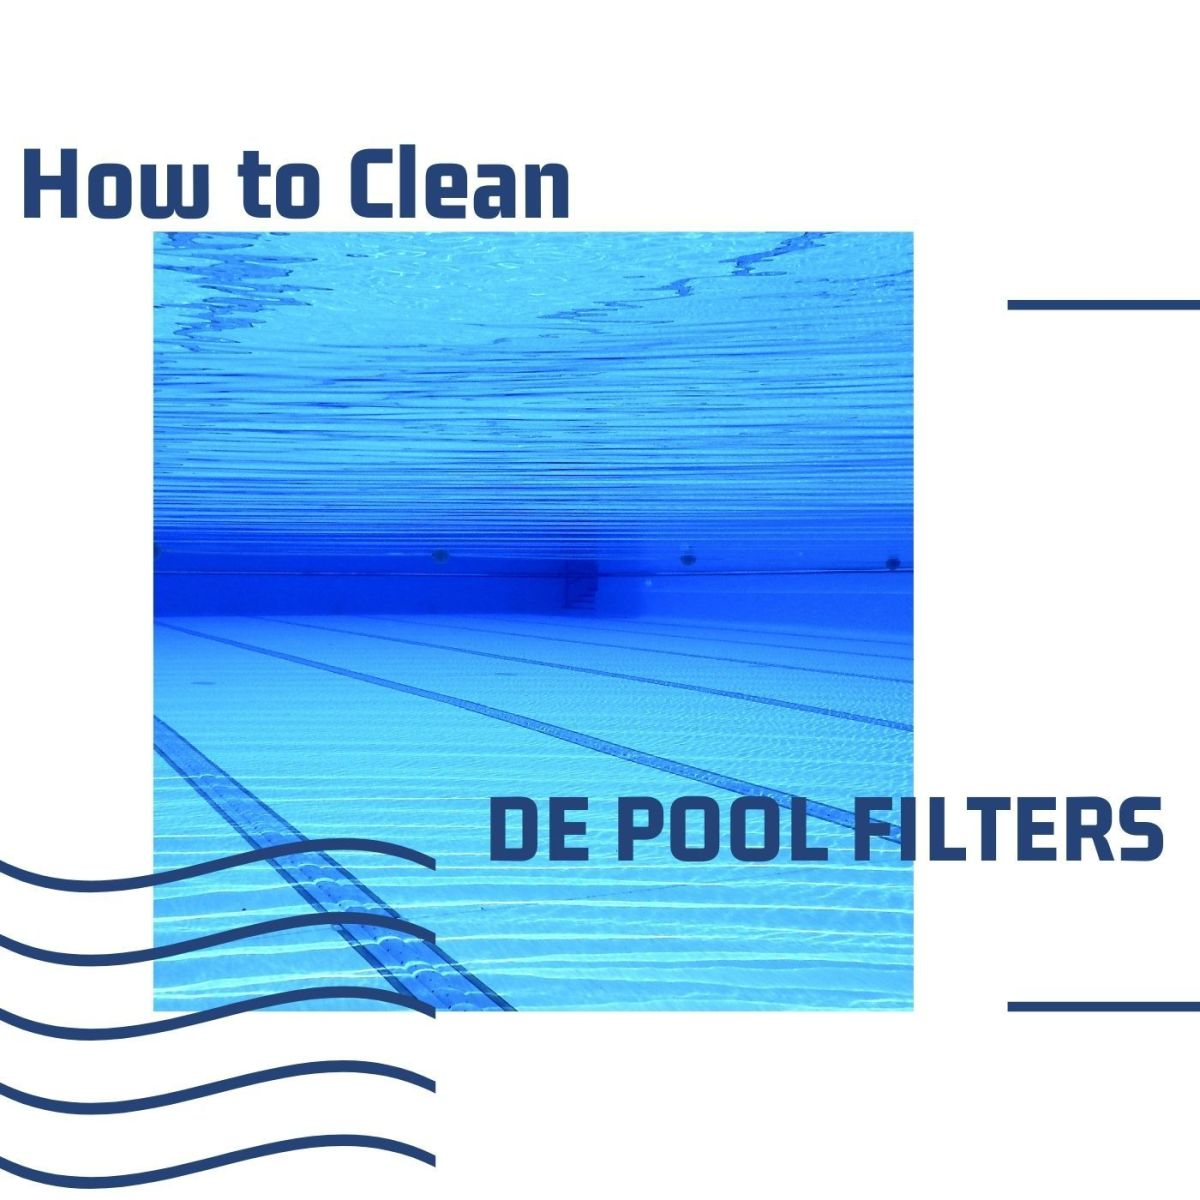 Cleaning DE filters isn't hard when you know what you are doing!